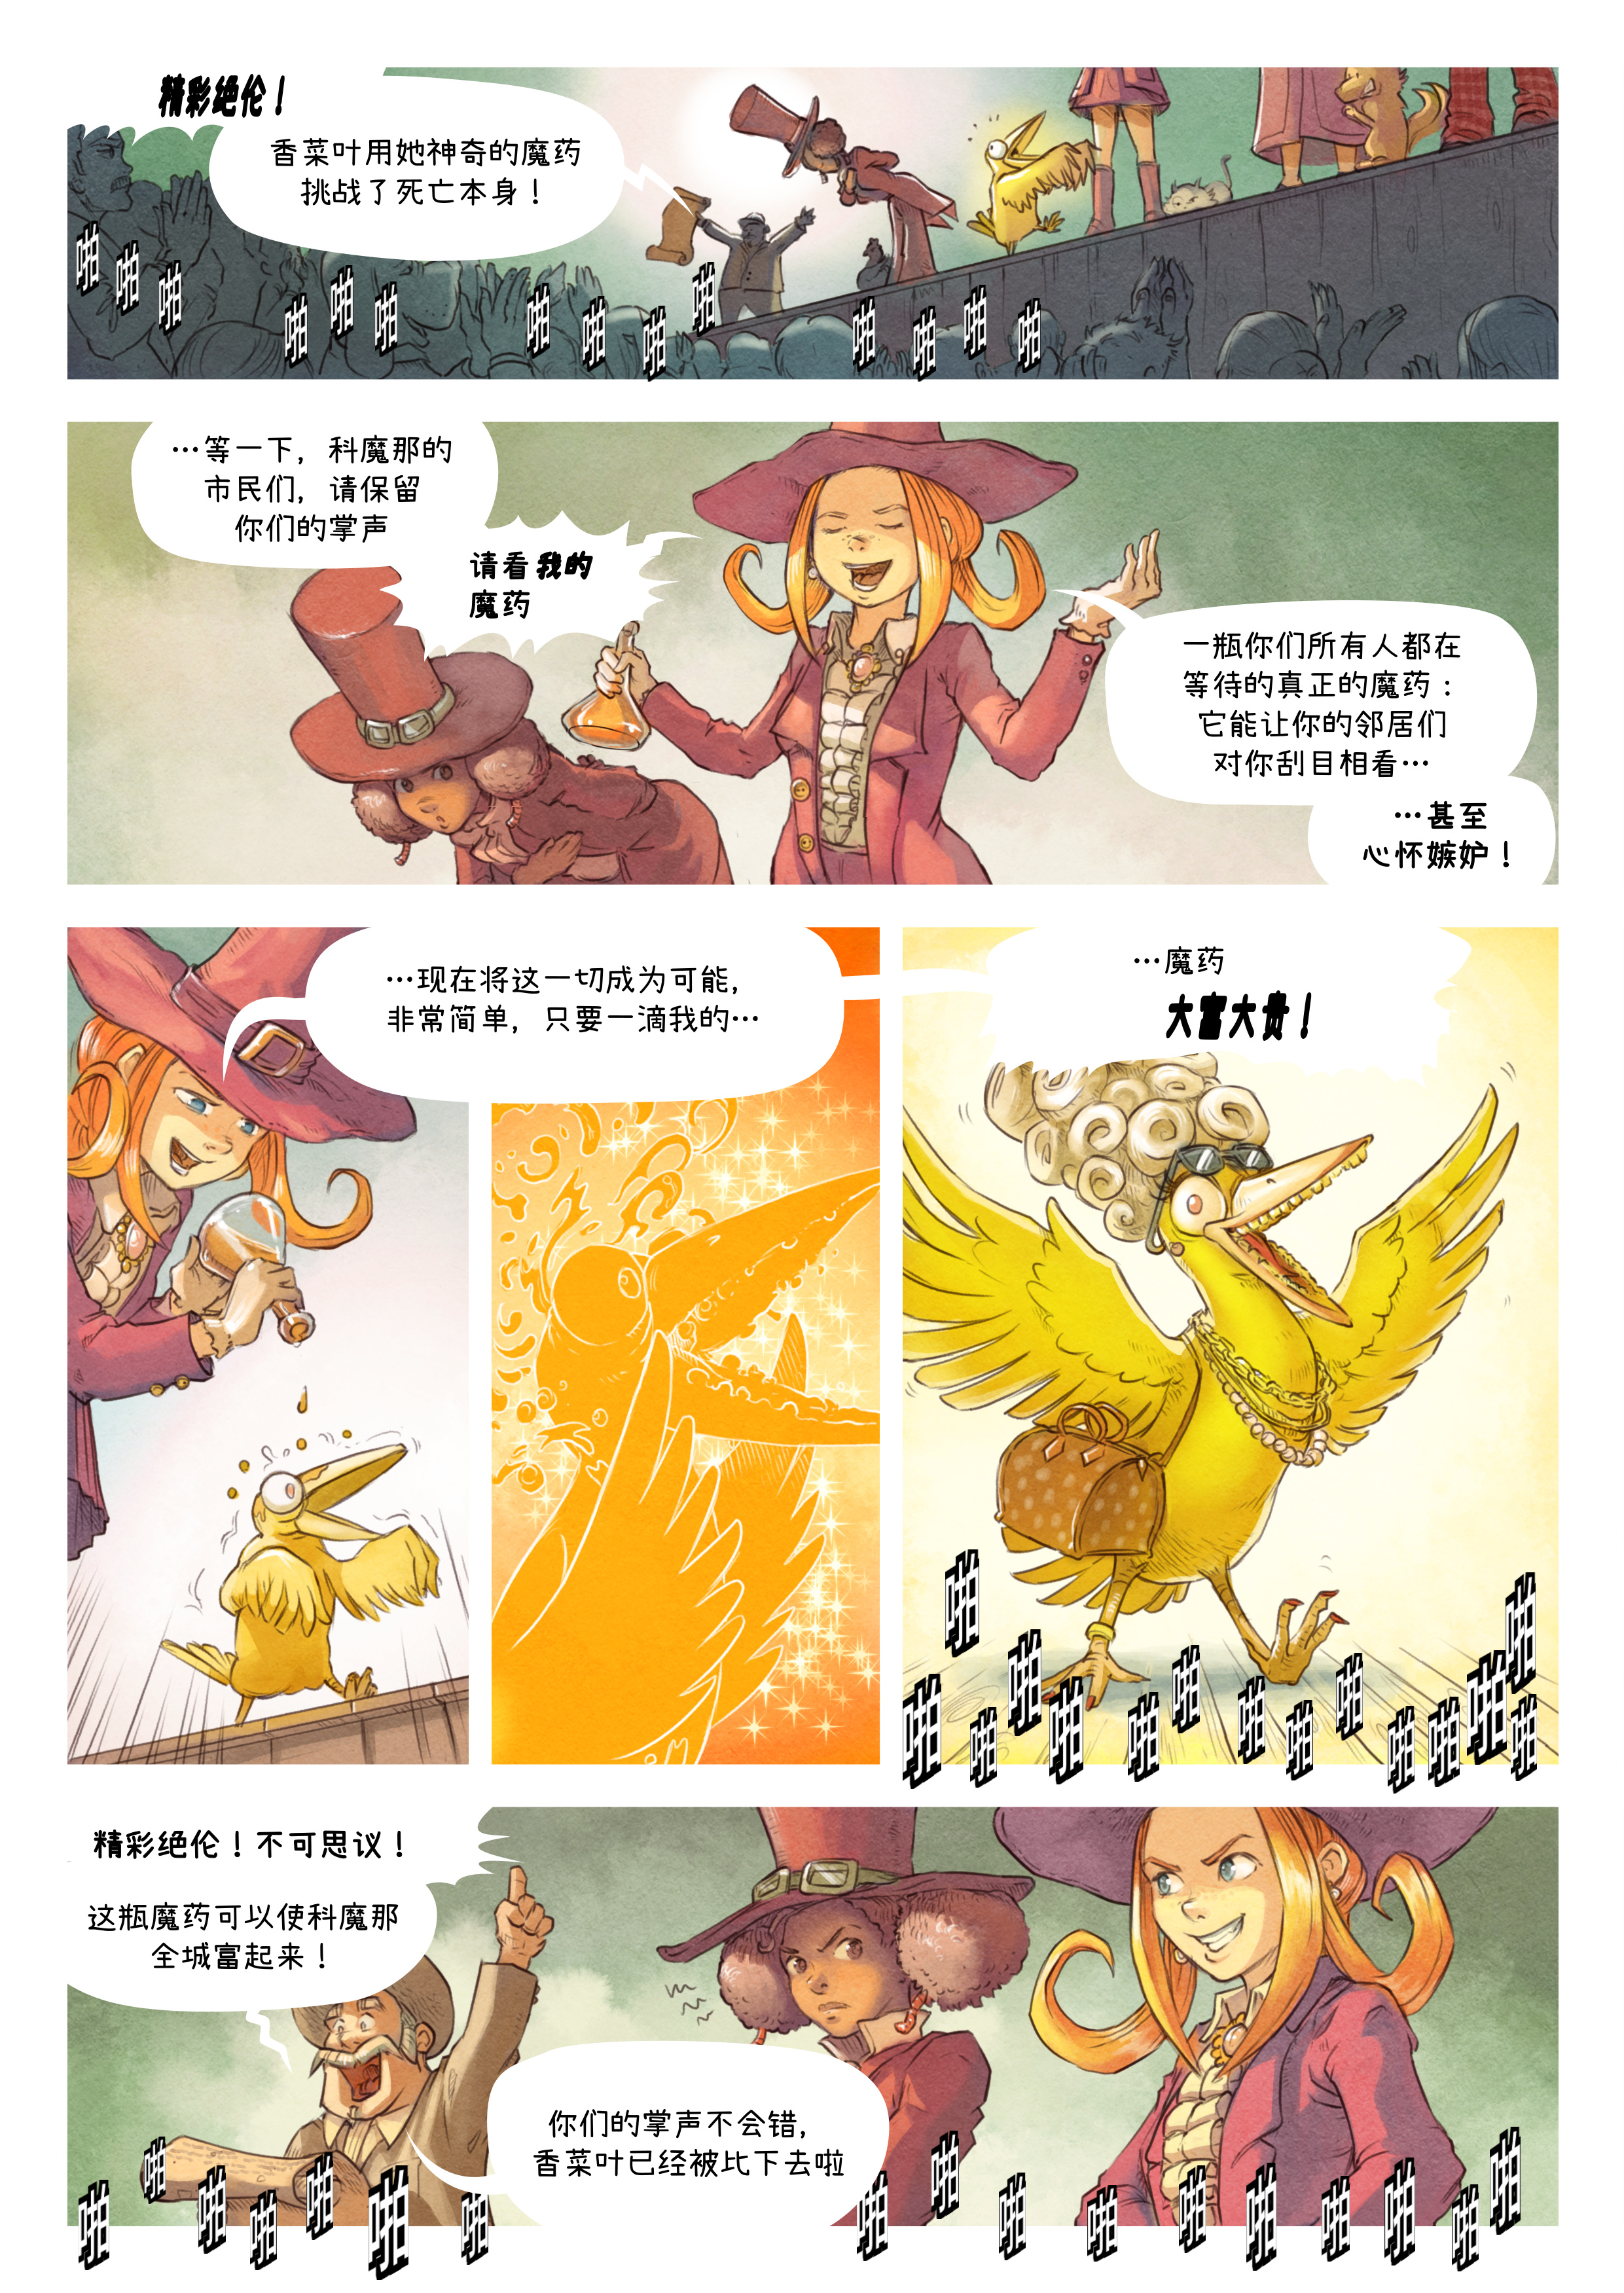 A webcomic page of Pepper&Carrot, 漫画全集 6 [cn], 页面 5